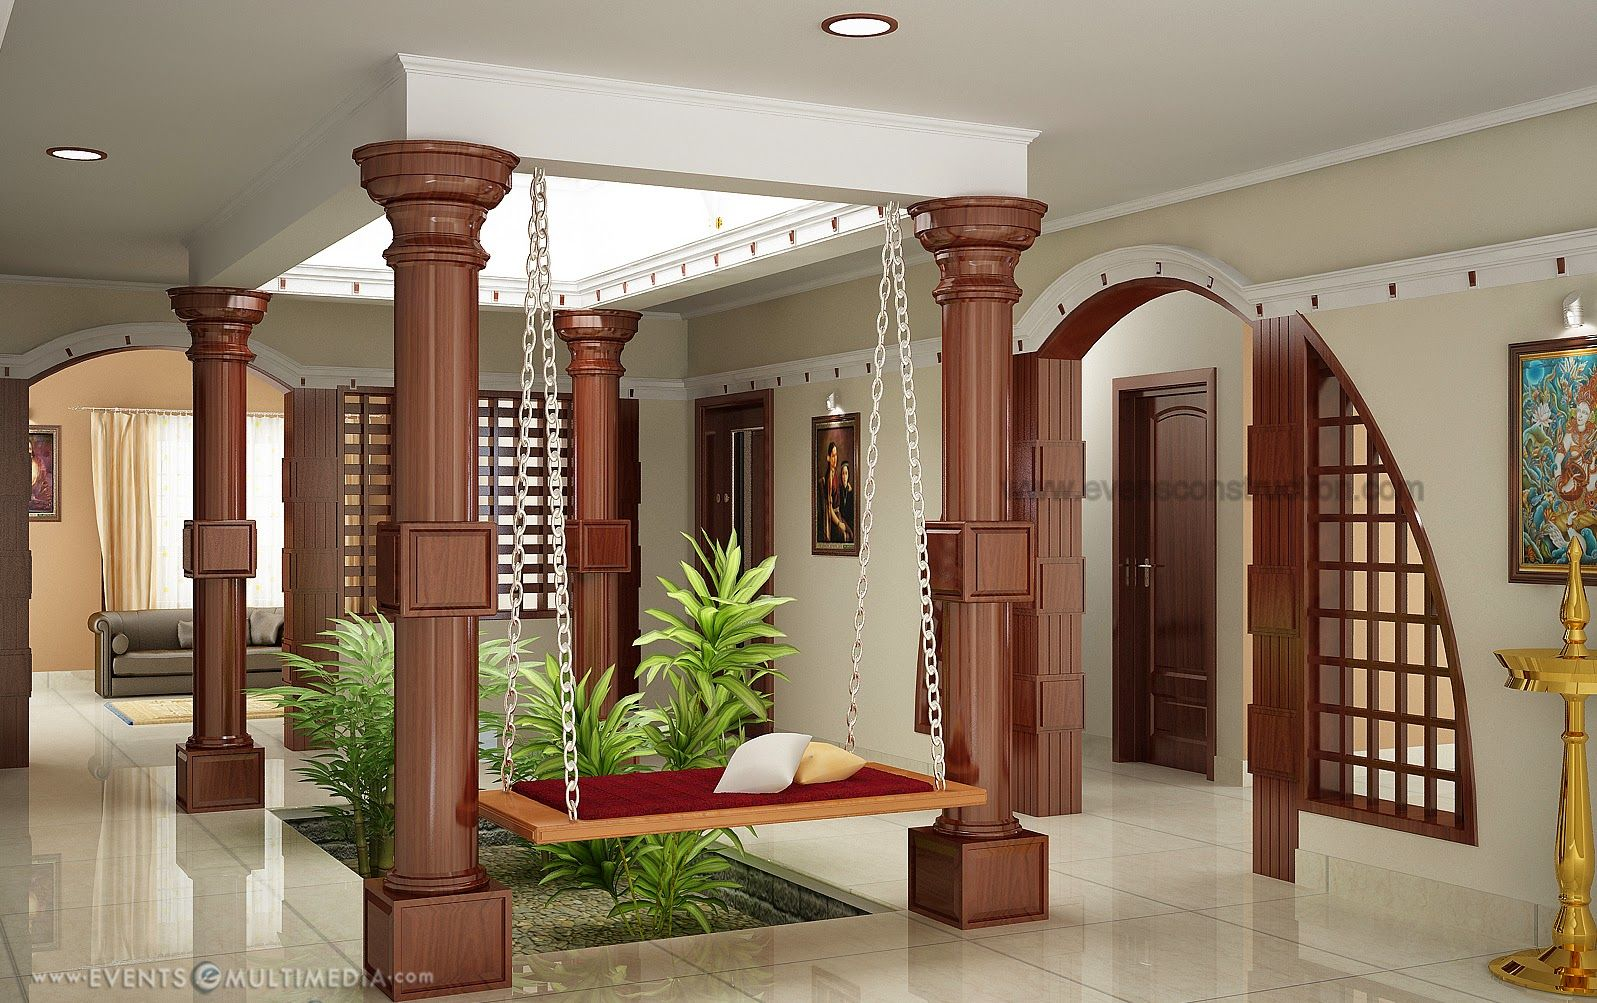 Interior design kerala google search inside and for Indian home interior living room